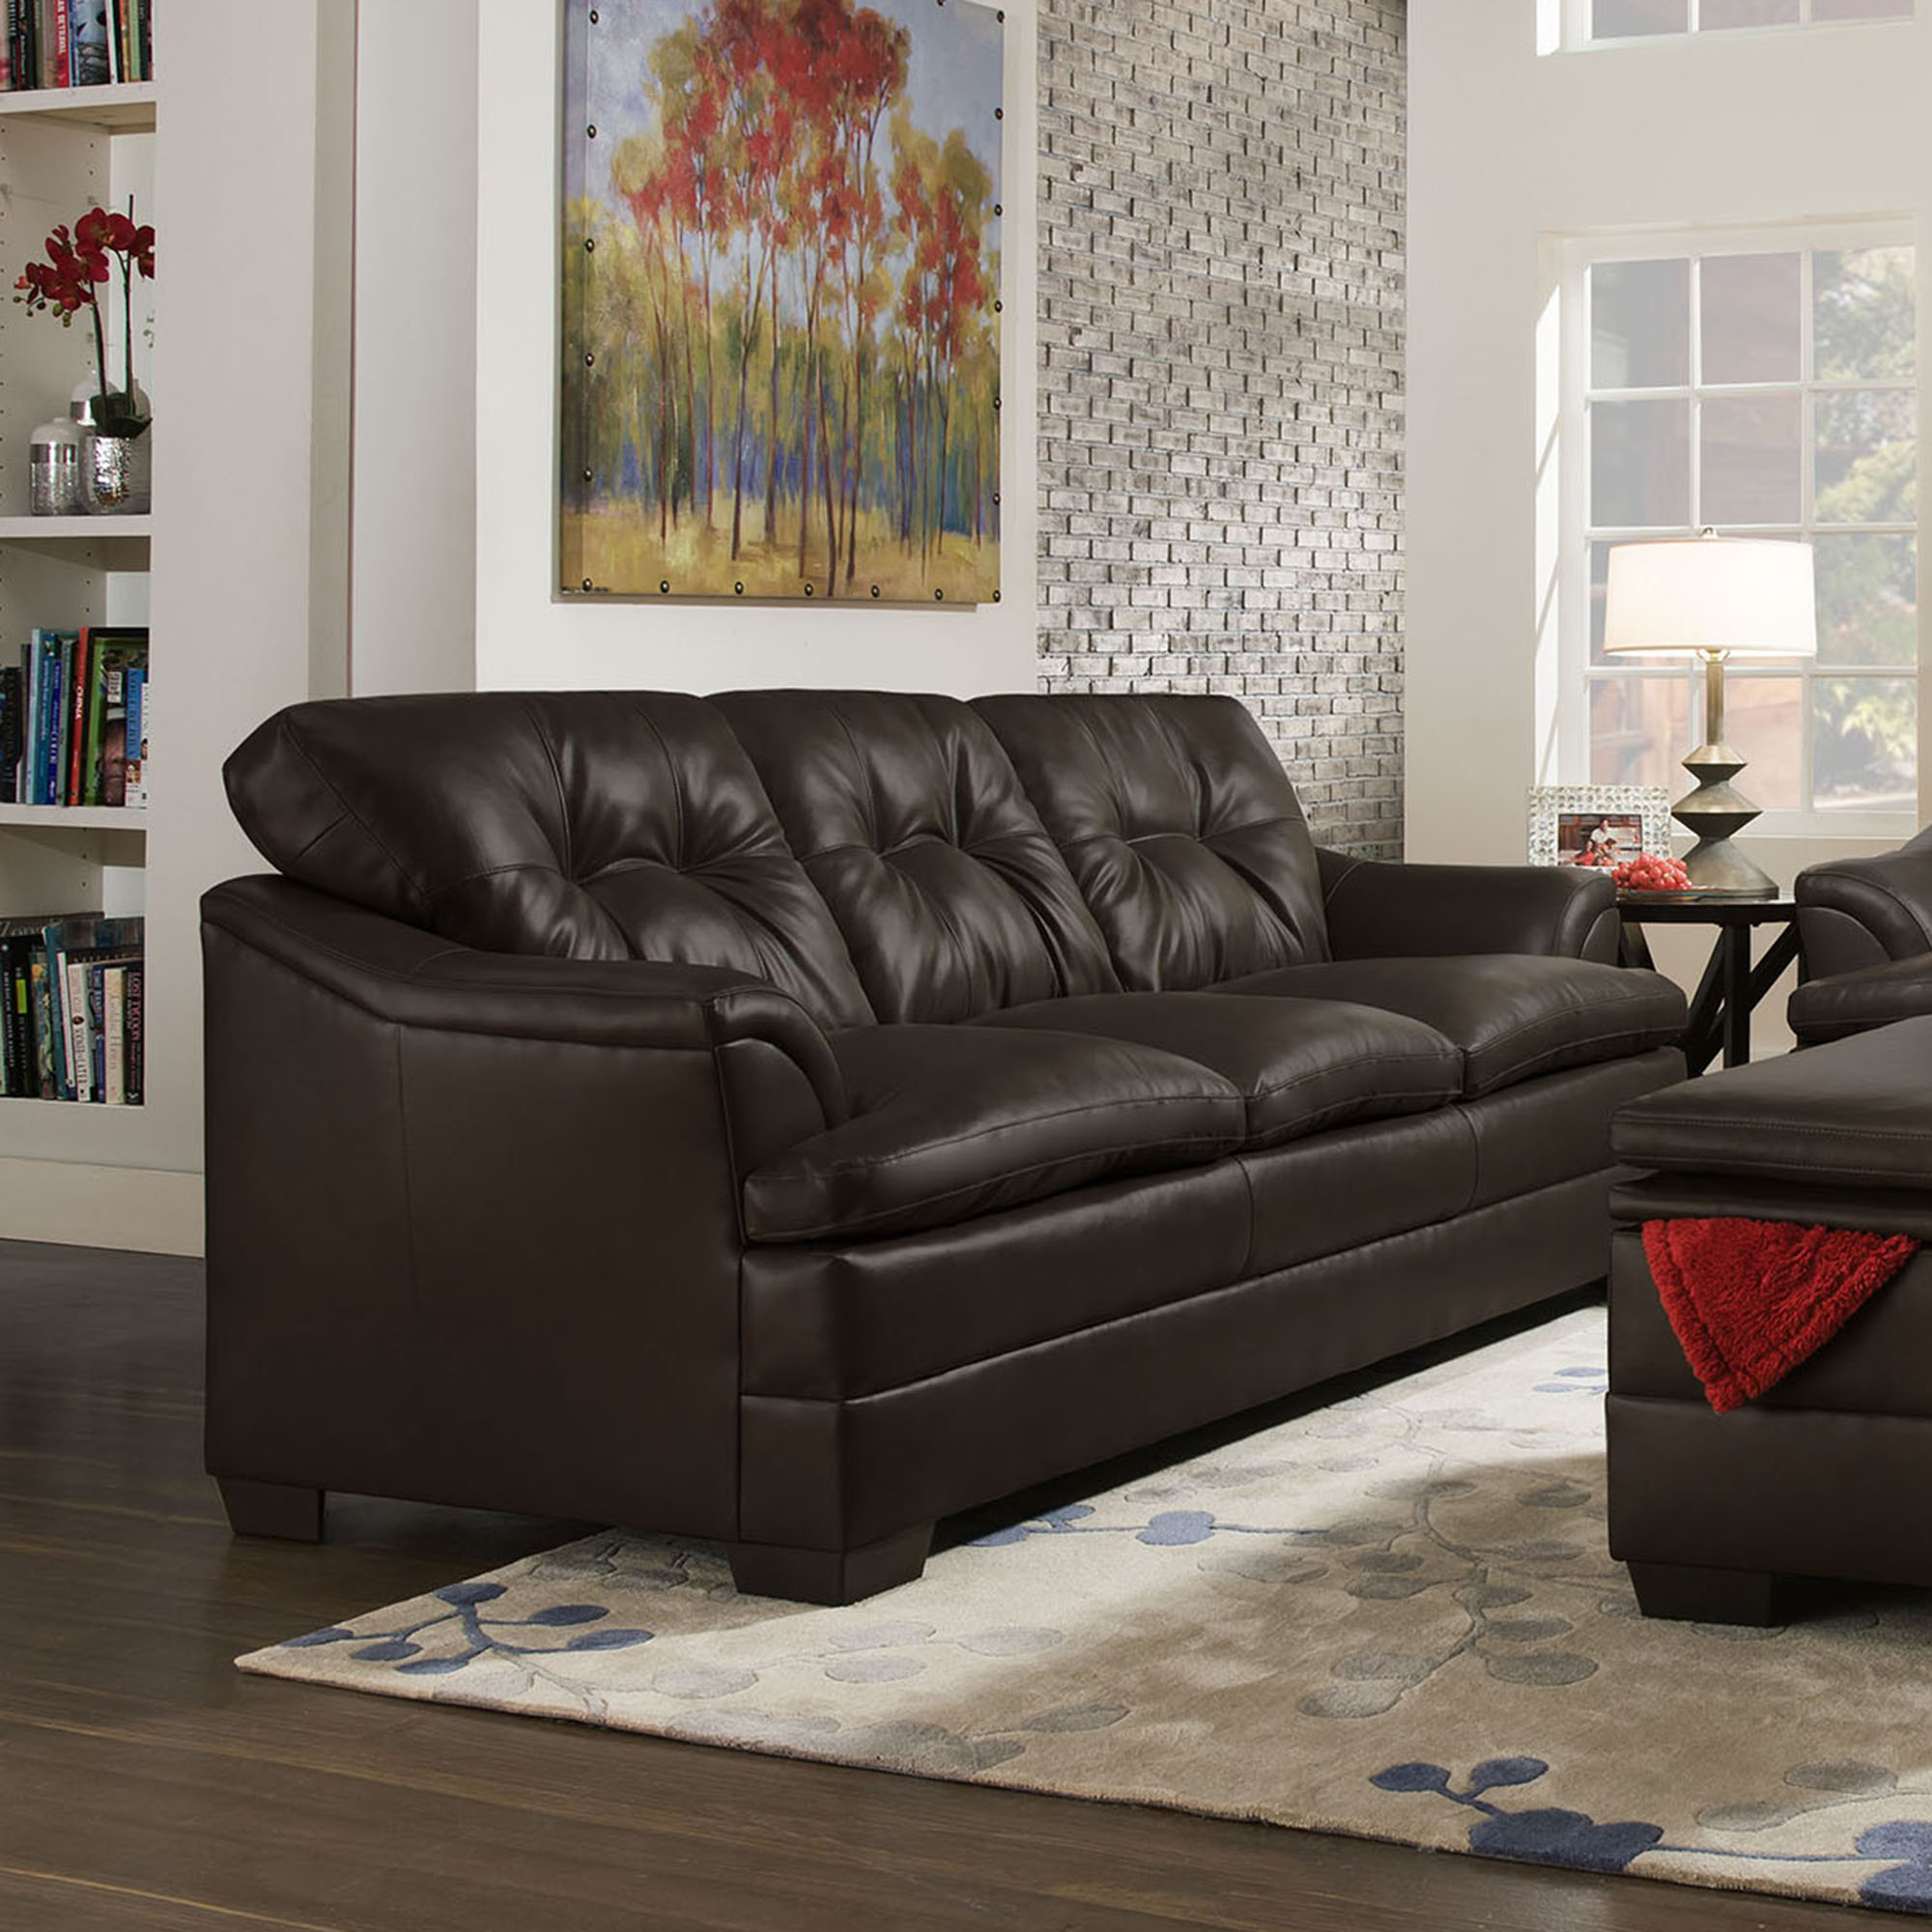 Best Apollo Sofa In Espresso Simmons Upholstery And Casegoods 400 x 300